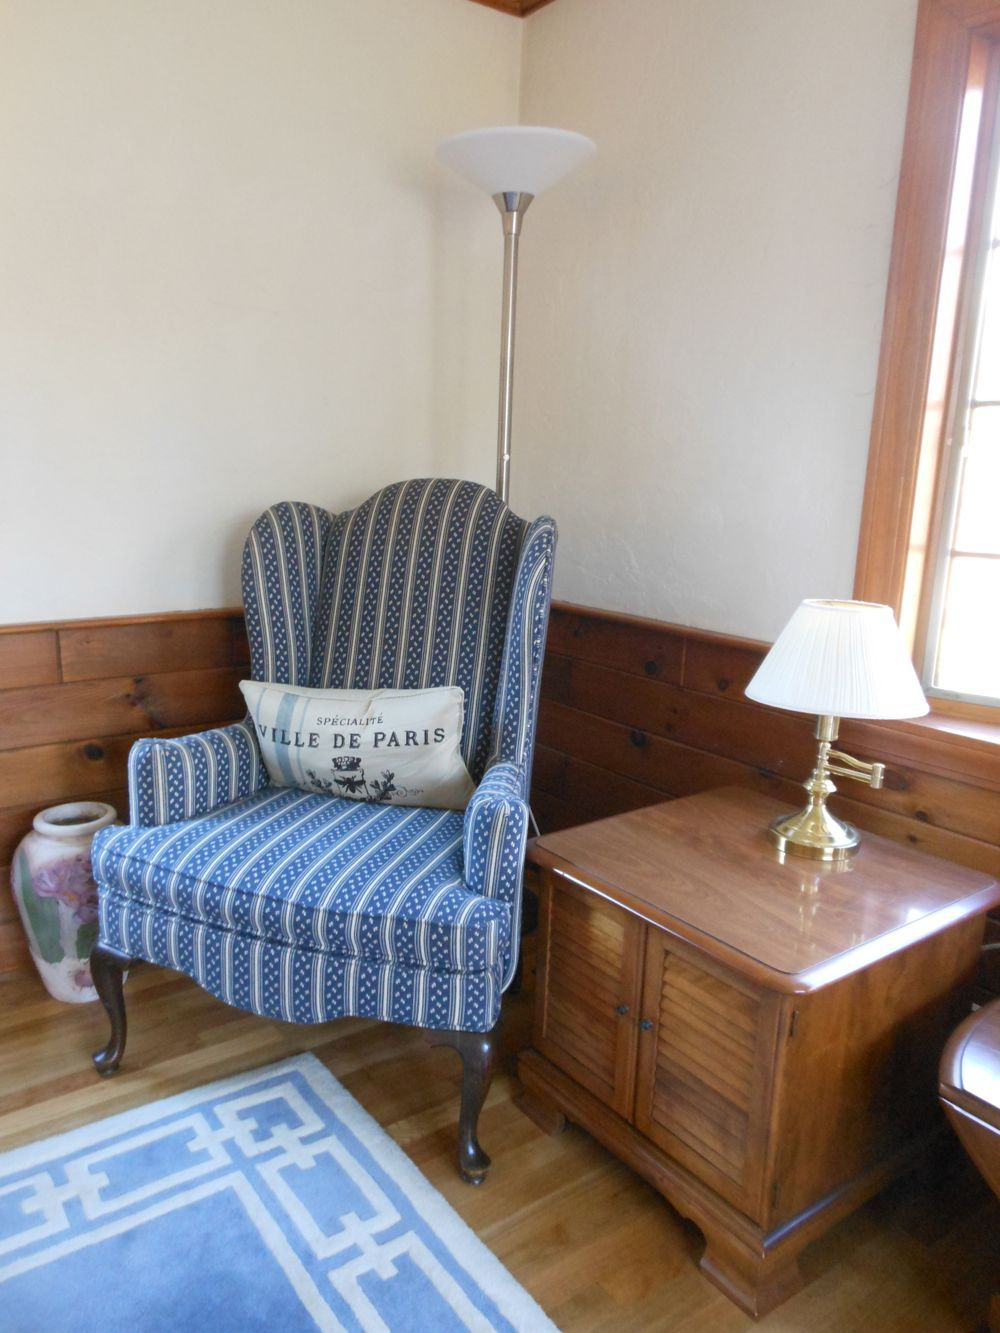 Timeless furnishings from our sudbury sale including a blue queen anne style wing back chair and a small cabinet or end table with louver doors